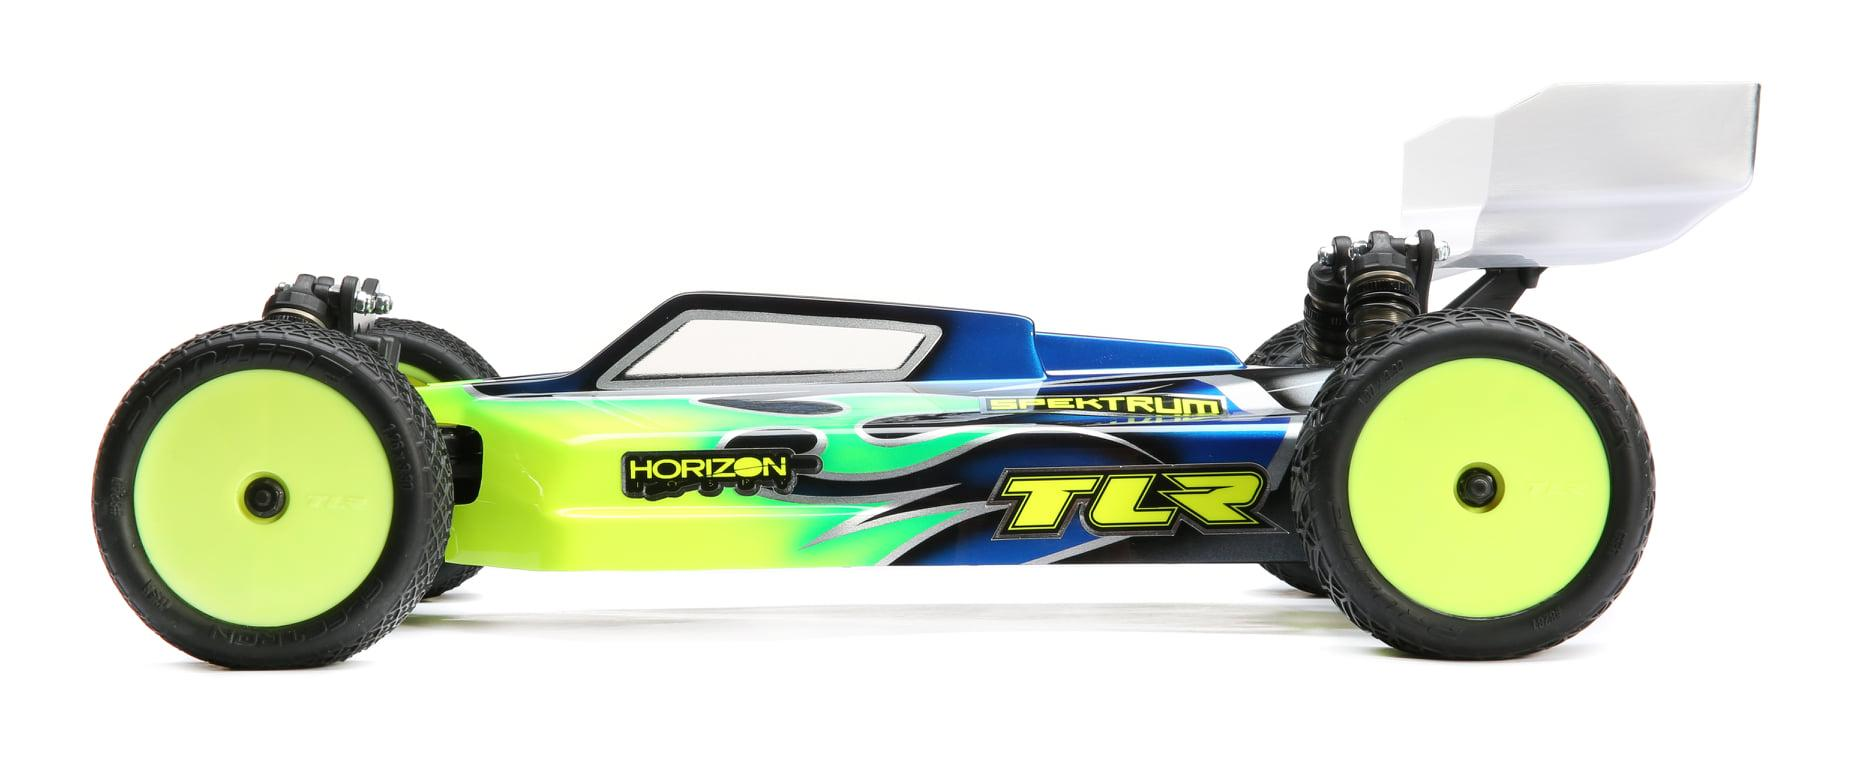 22X-4 Race Kit | Team Losi Racing